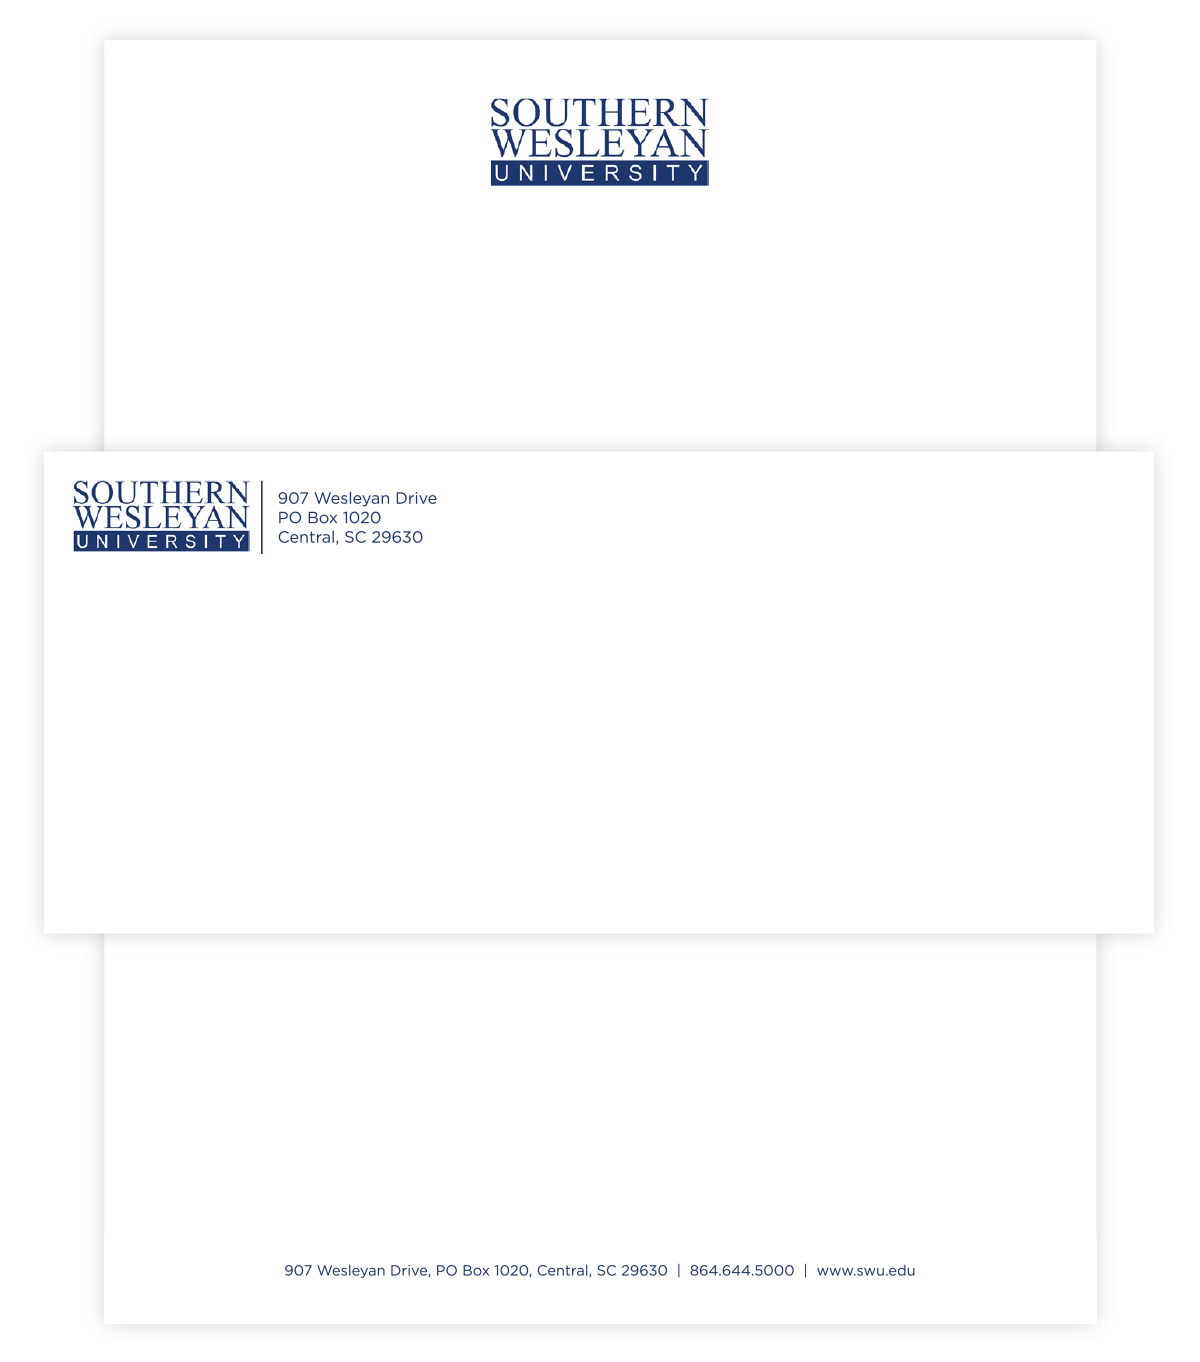 SWU letterhead and envelope example